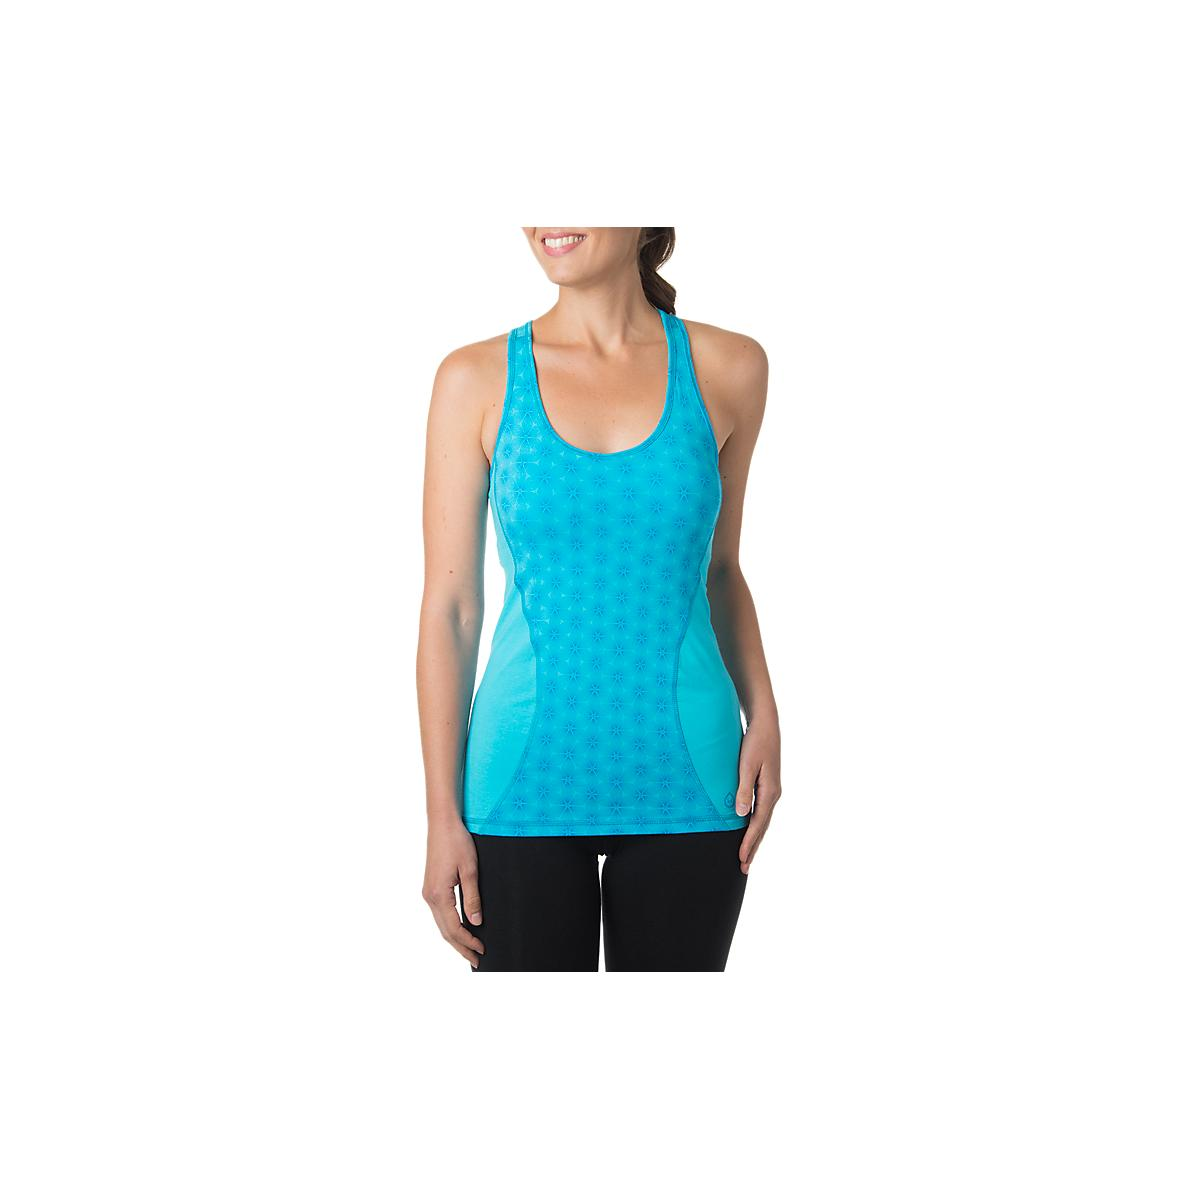 Women's Tasc Performance�Pace Racer